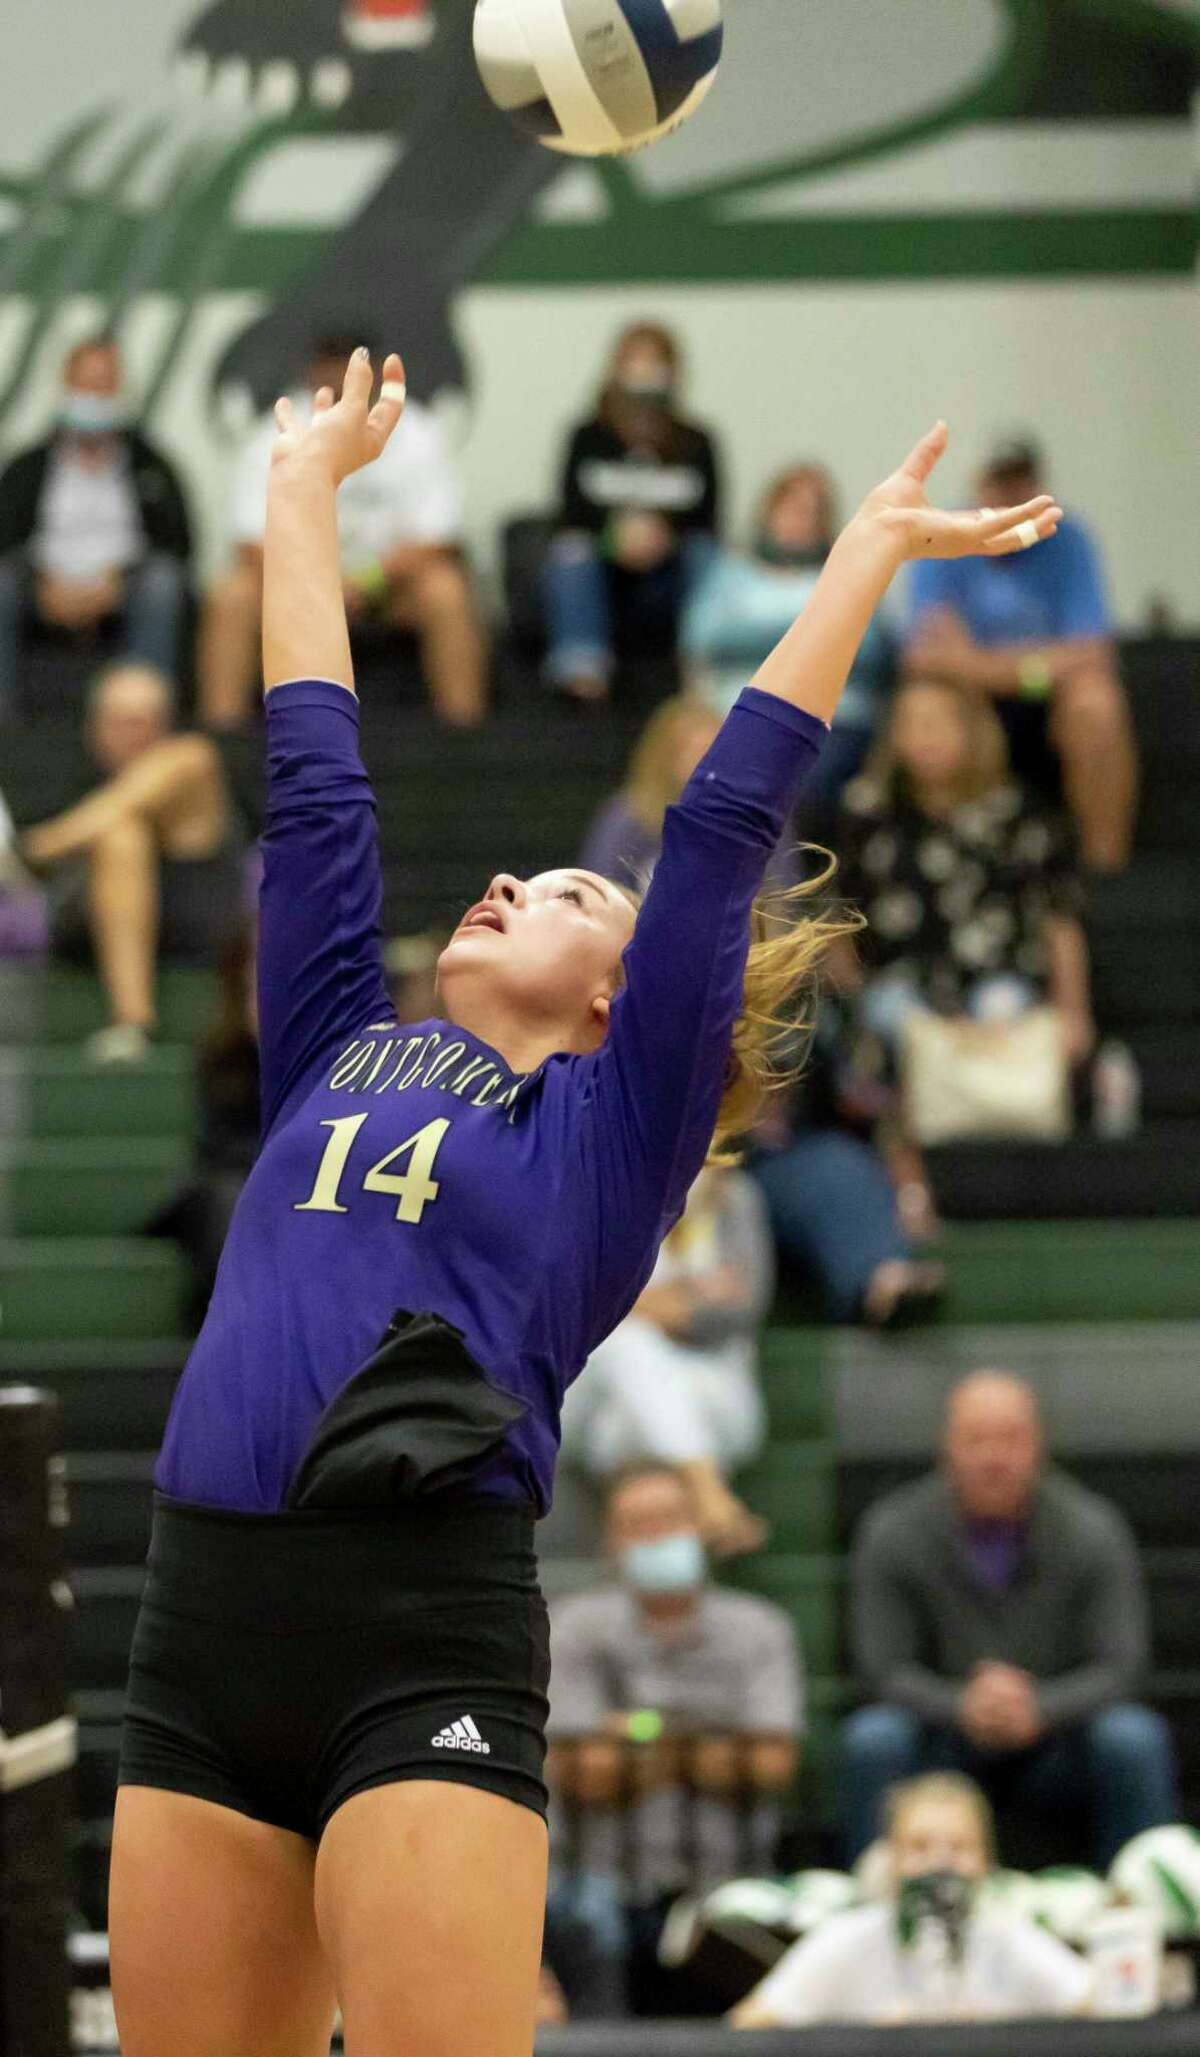 Montgomery setter Raina McWhirter (14) sets a play during the first set of a District 20-5A volleyball match at Kingwood Park High School in Kingwood.